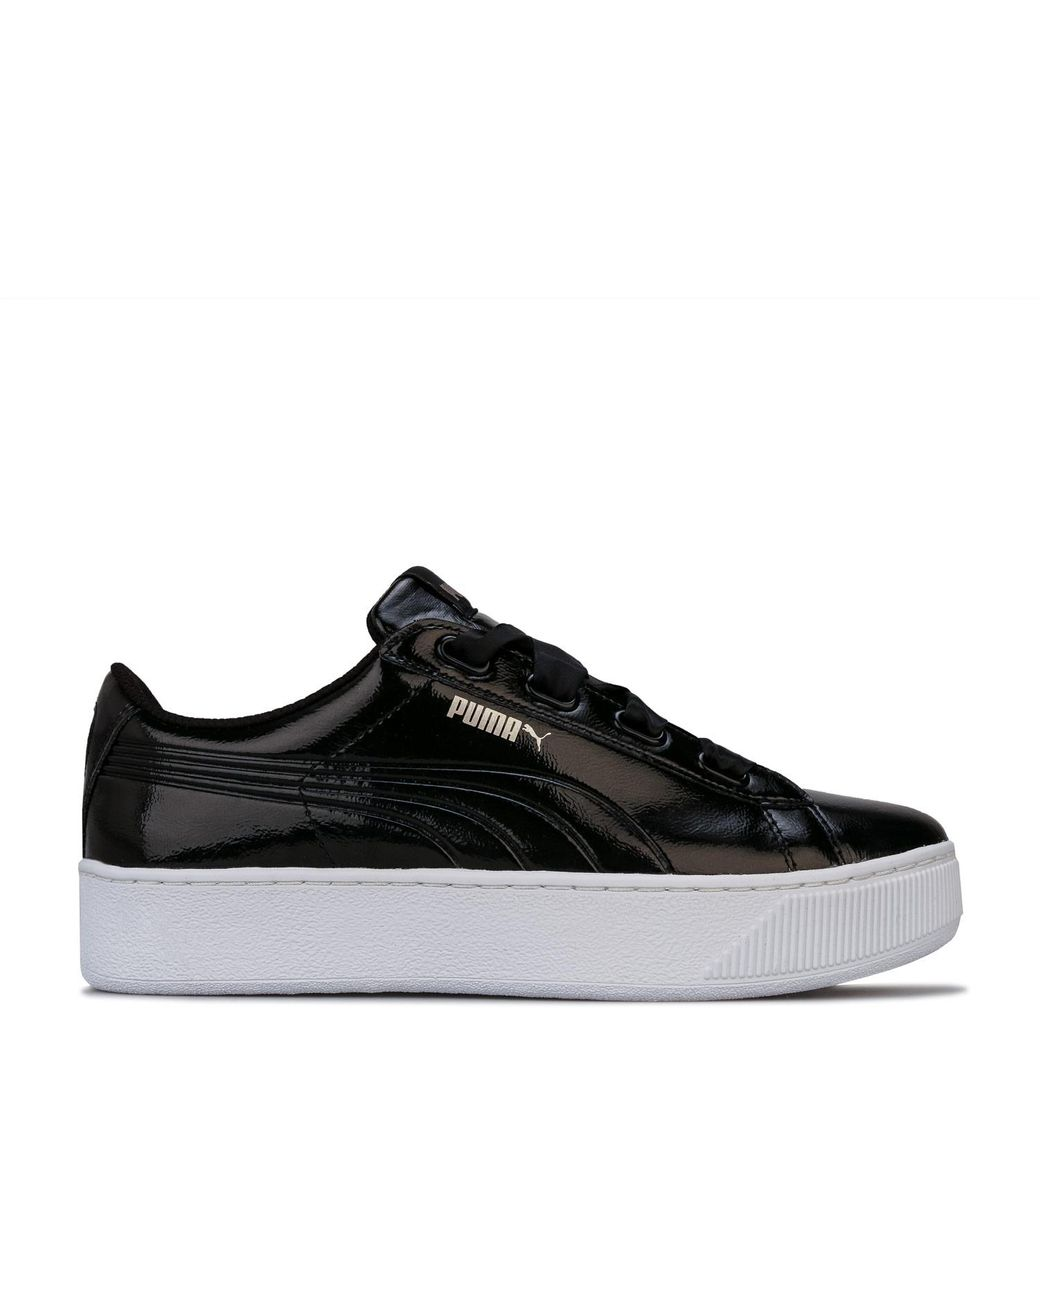 PUMA Synthetic Vikky Platform Ribbon Trainers in Black Lyst